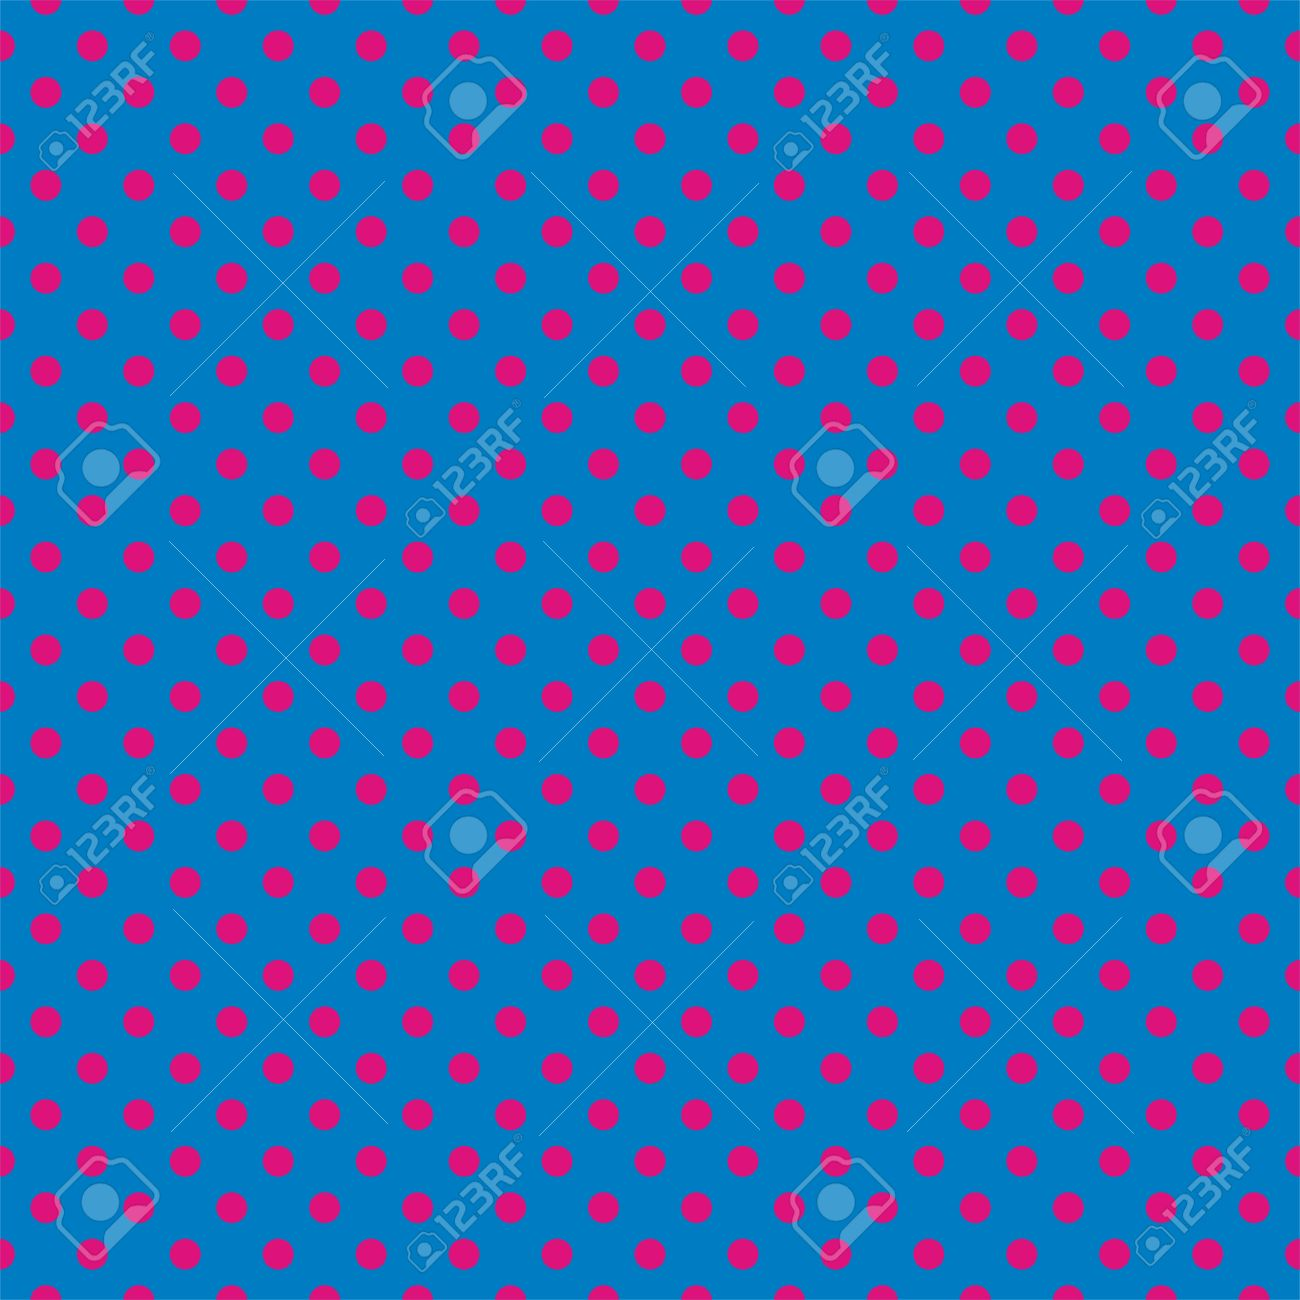 Seamless Vector Pattern With Neon Pink Polka Dots On A Dark Blue Royalty Free Cliparts Vectors And Stock Illustration Image 31248711